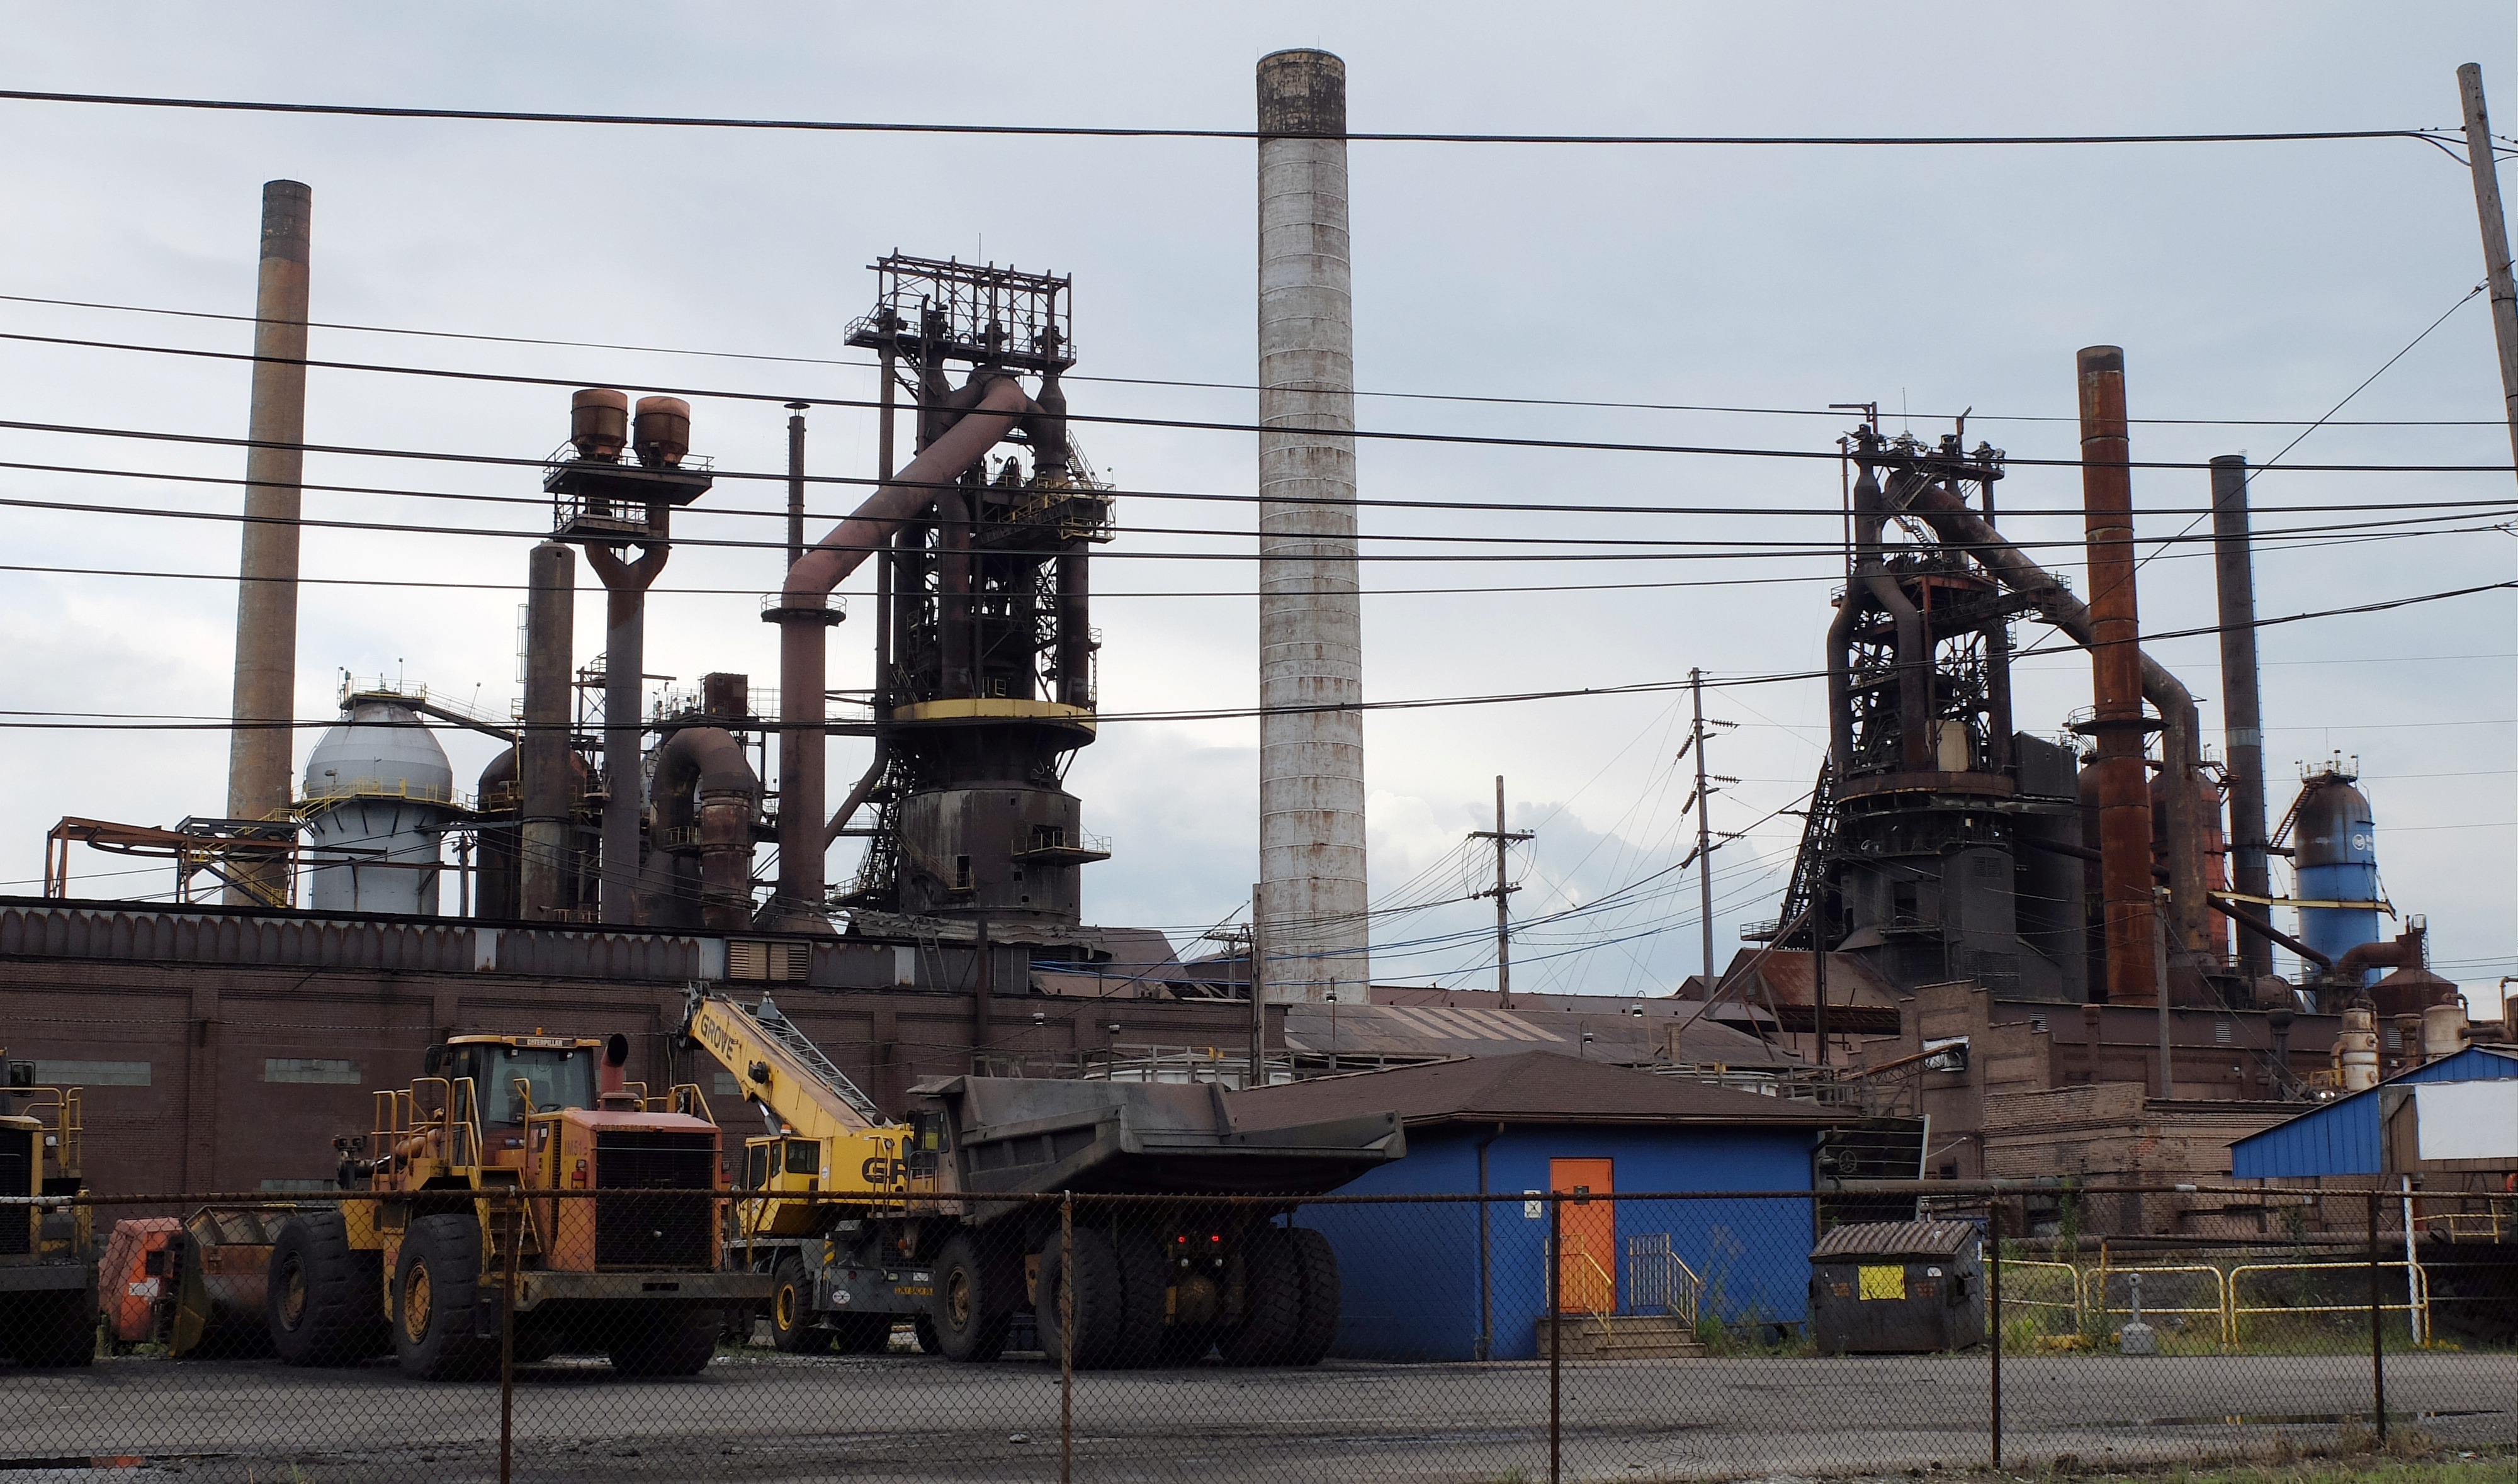 Idled blast furnaces at U.S. Steel Corp's Granite City Works in Granite City, Illinois, July 5, 2017. U.S. President Donald Trump is considering steel import curbs based on a national security review of the industry.